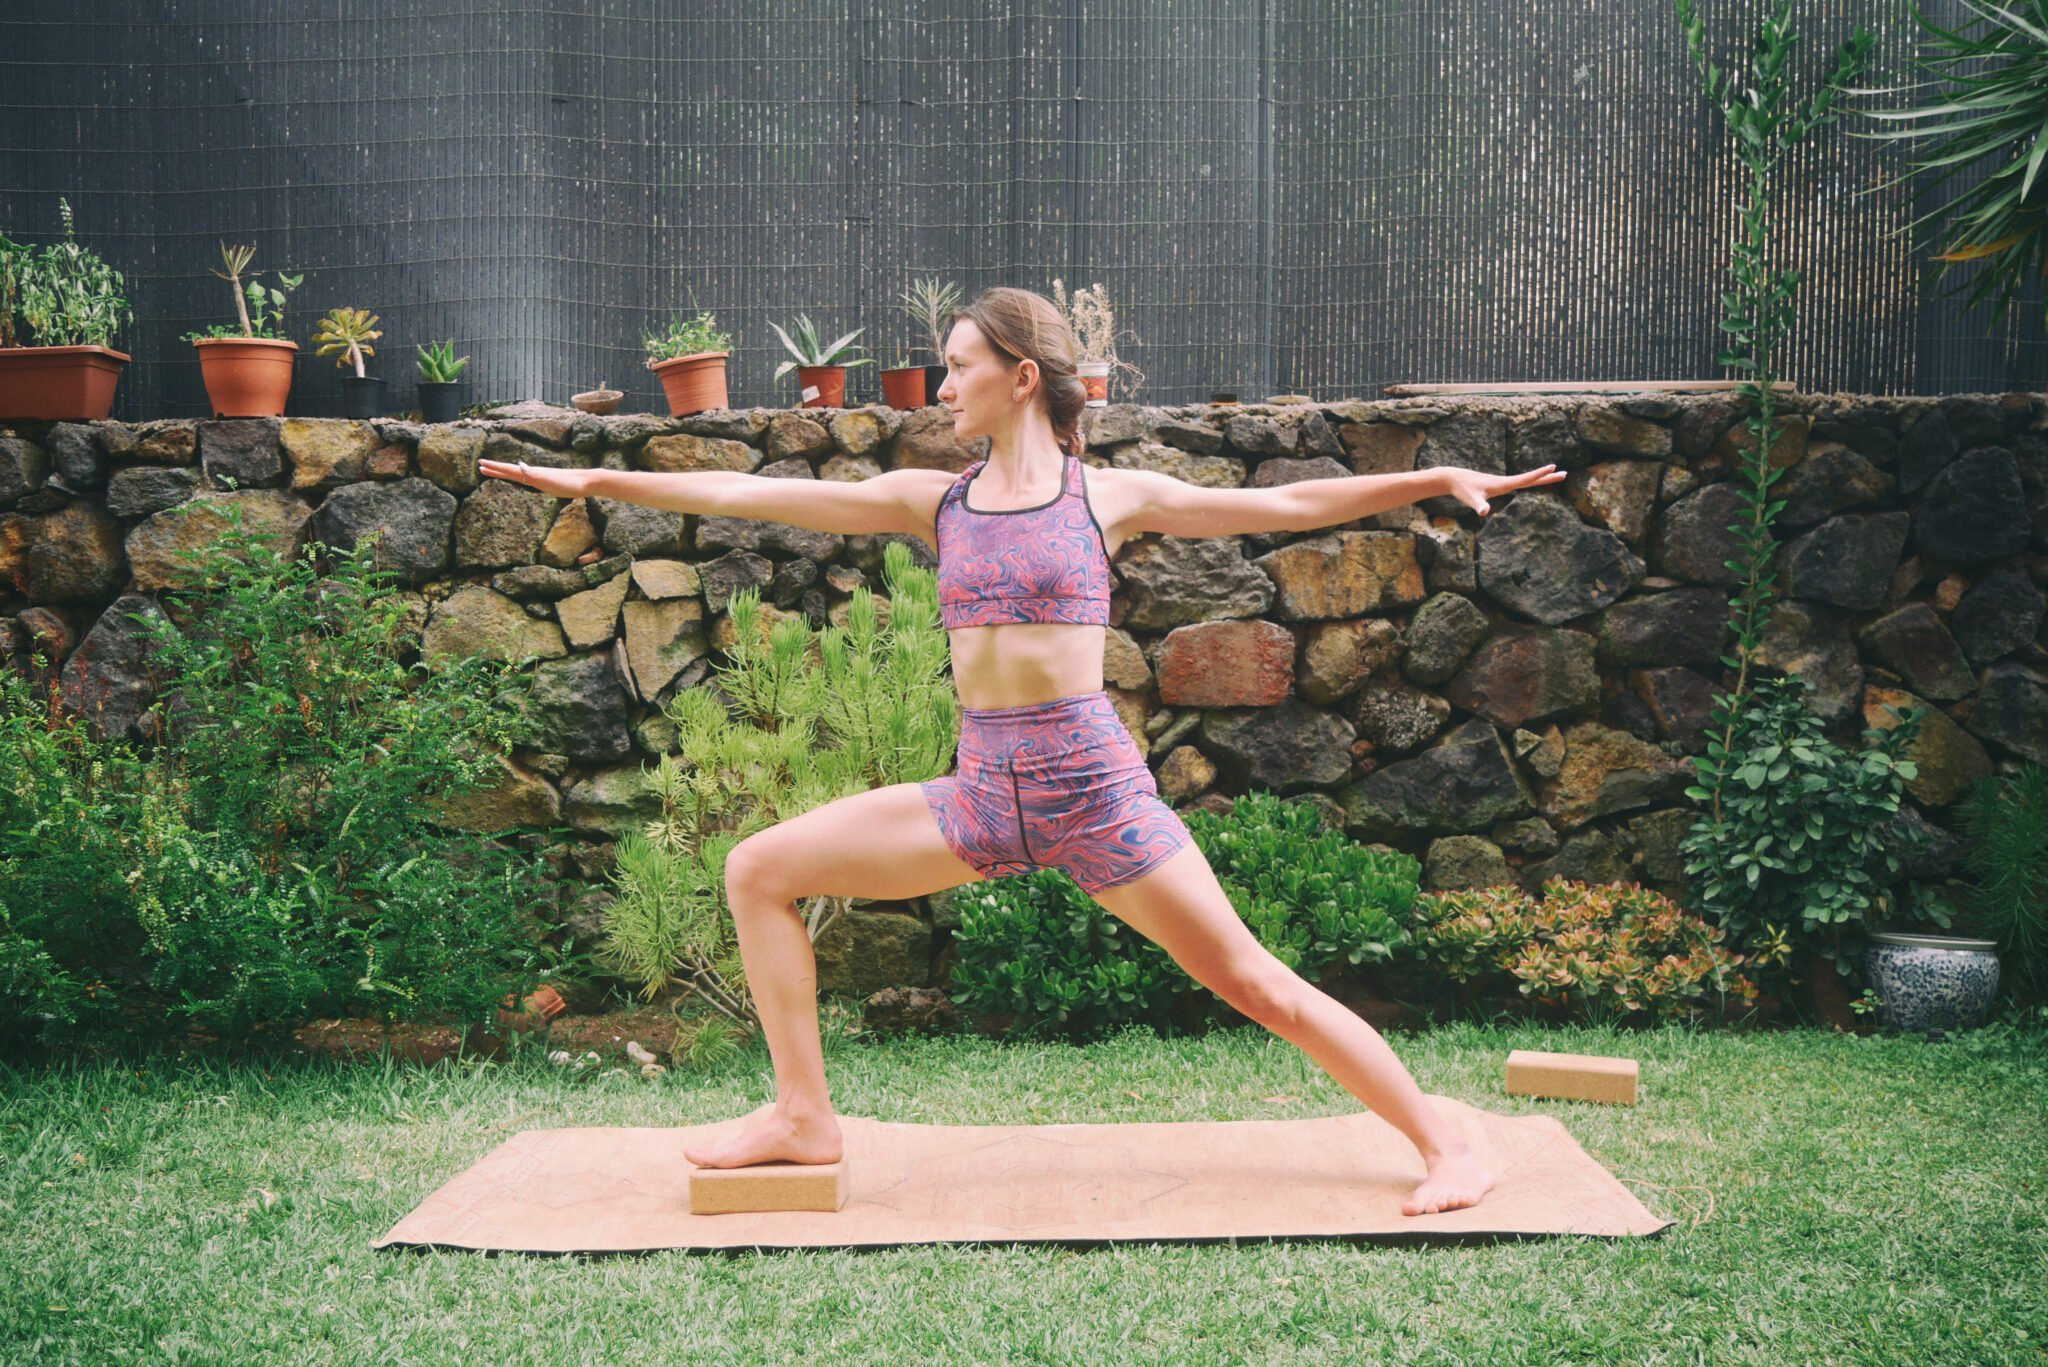 How To Use Yoga Blocks For Flexibility And Strength: 26 Fun Variations Of Classic Yoga Poses